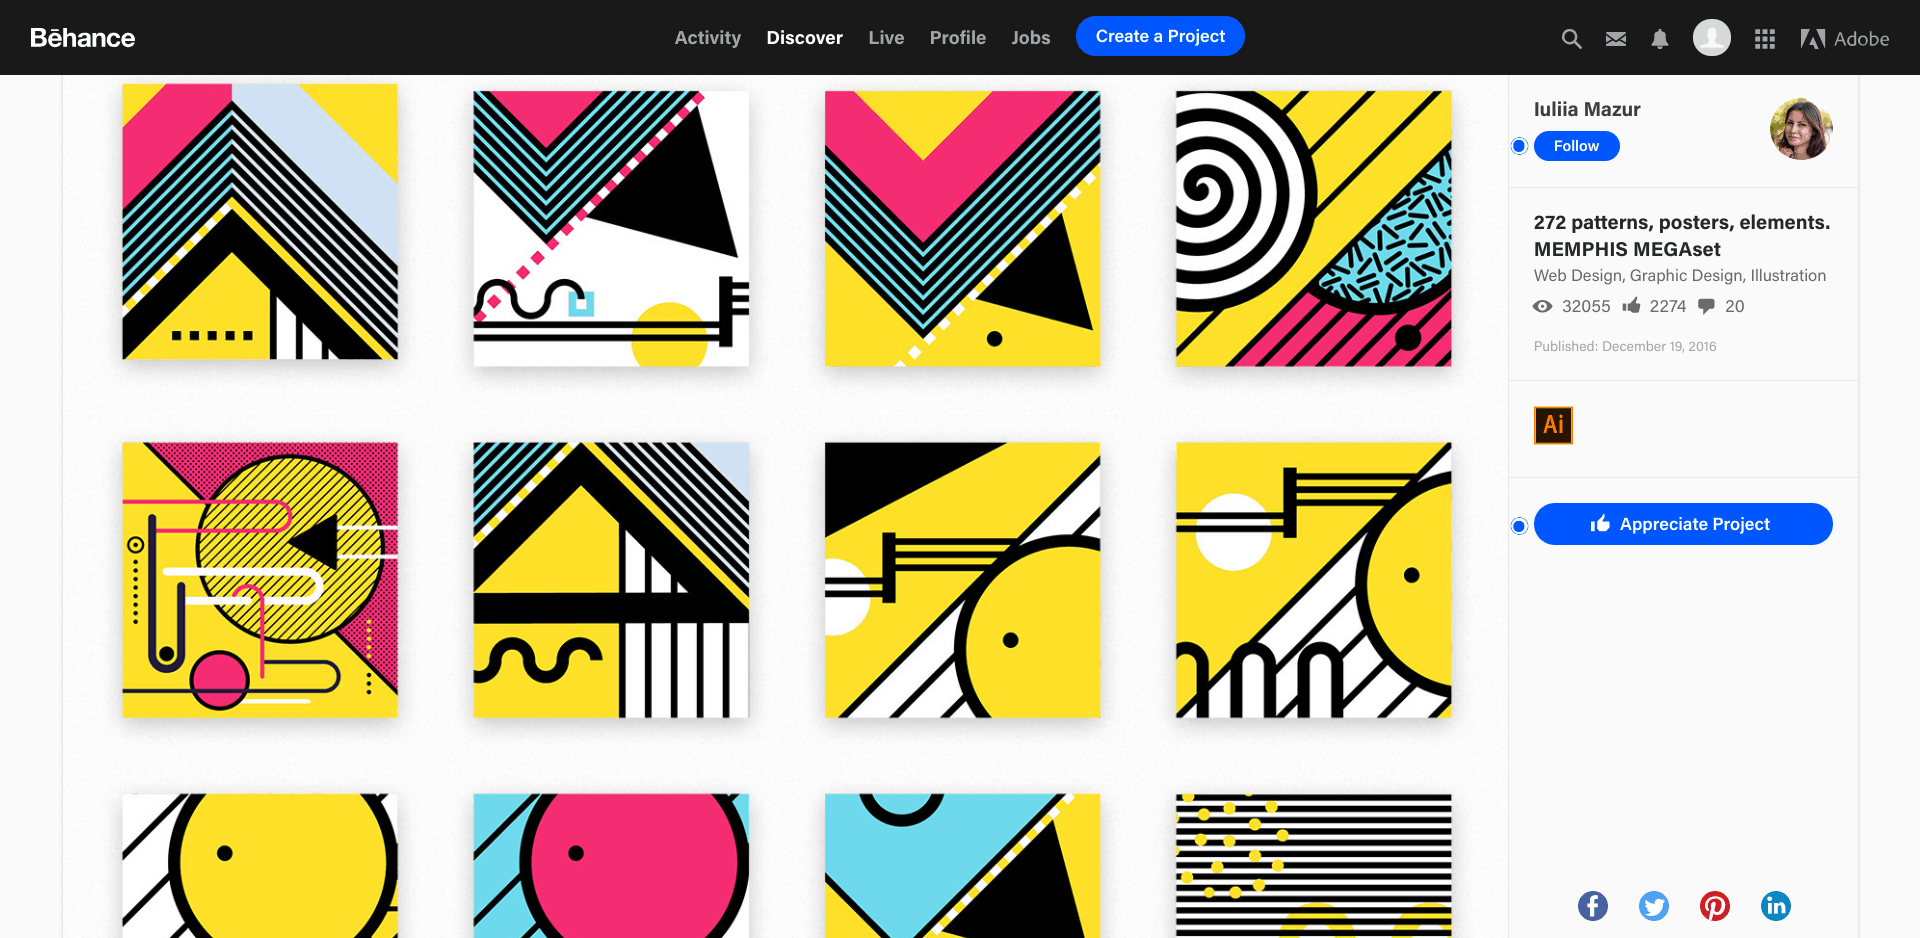 90s Themed Patterns and Fonts to use on Your Next Graphic